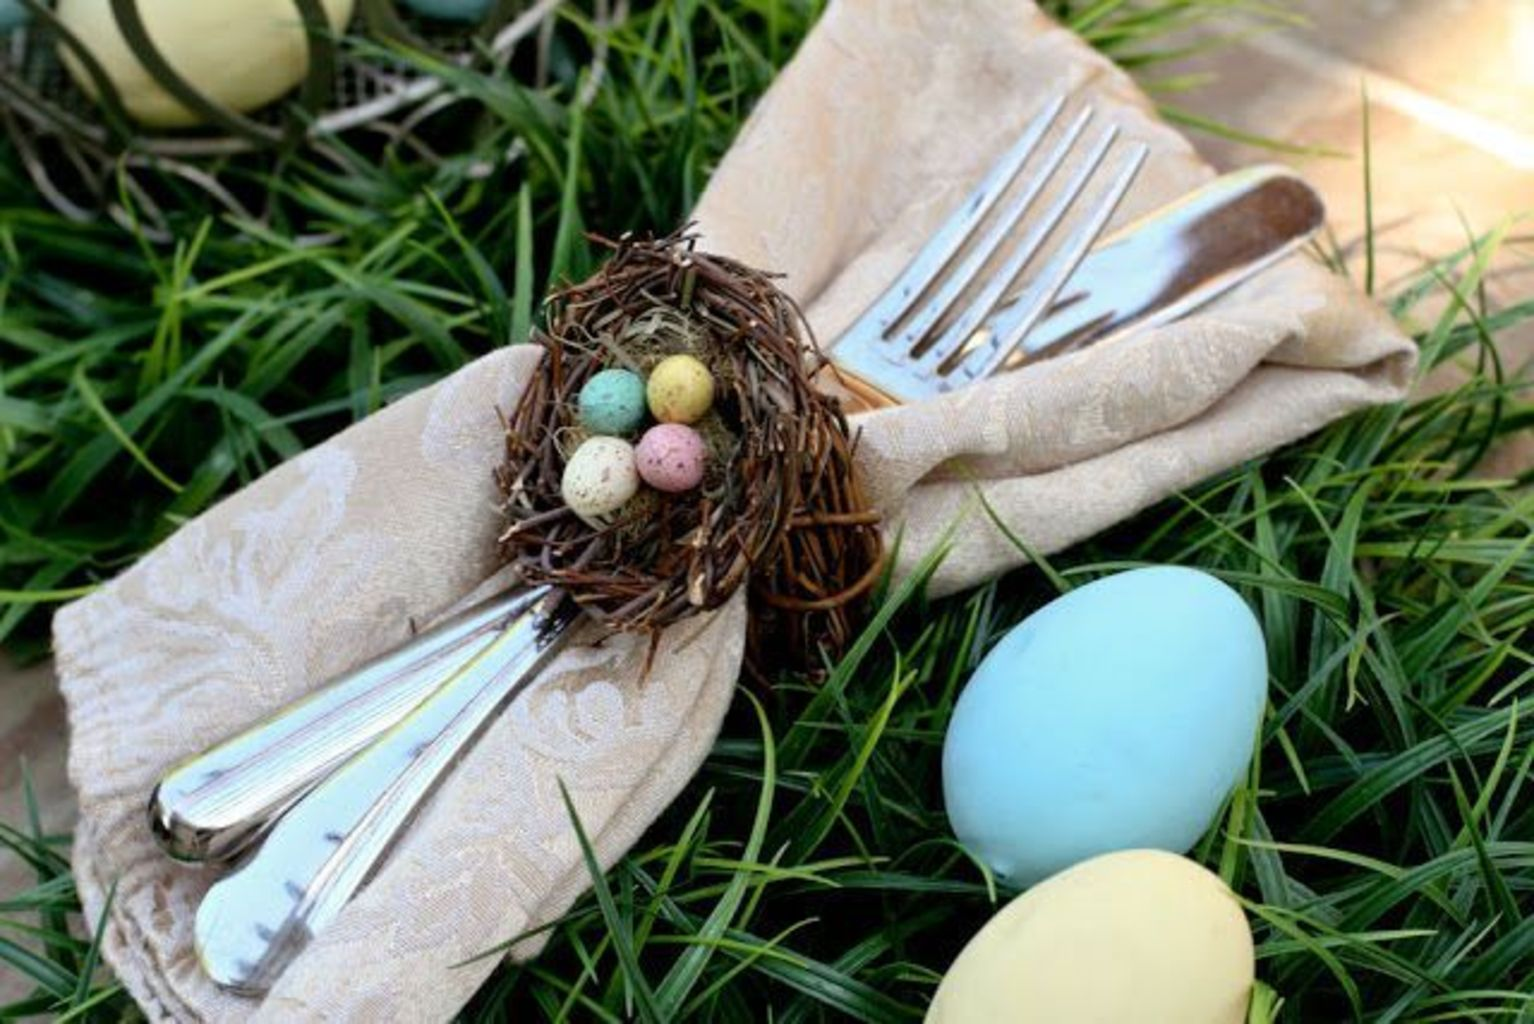 Spring tablesetting ideas with flowers live plants and decoartive eggs best for celebrating the Easter Part 24